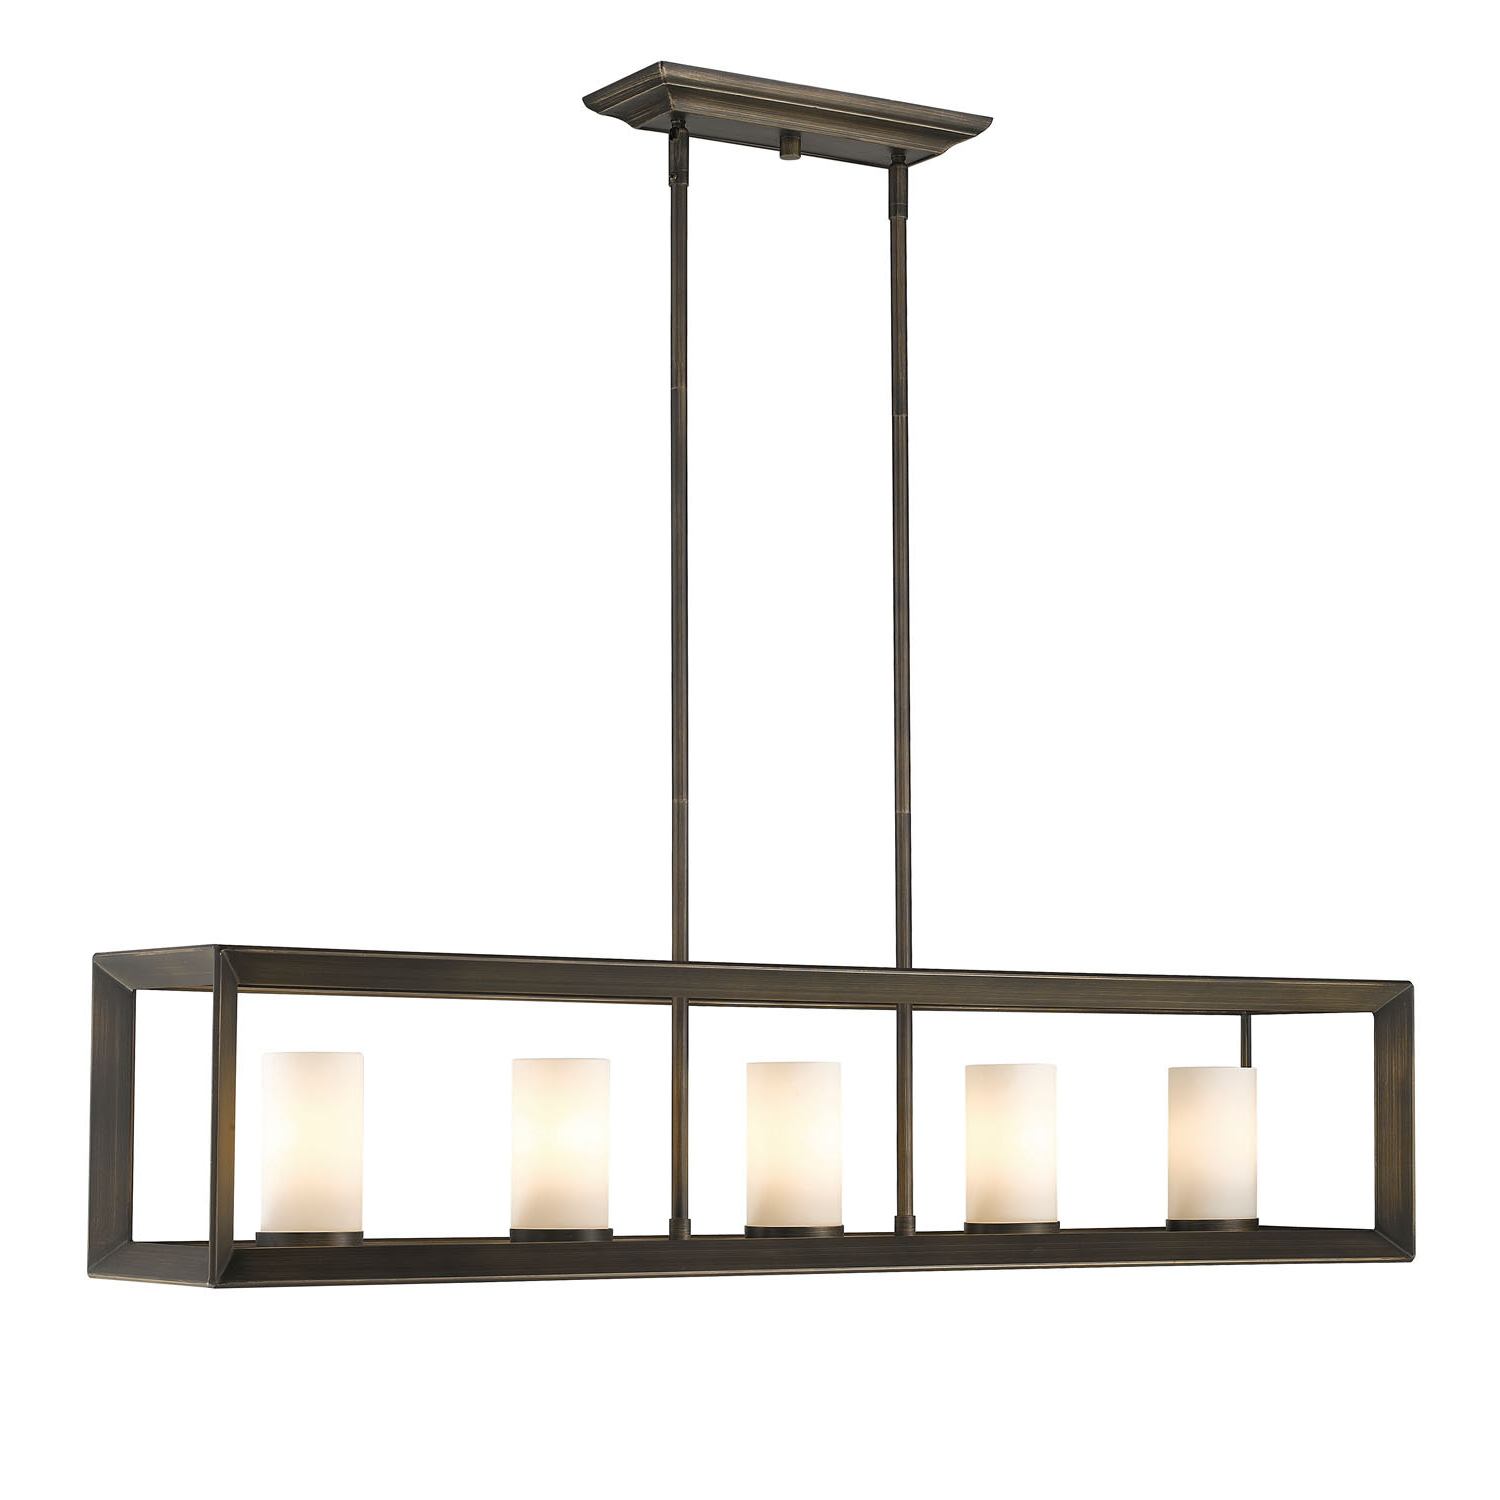 Thorne 5 Light Kitchen Island Pendant With Regard To Trendy Thorne 5 Light Kitchen Island Pendants (View 3 of 20)